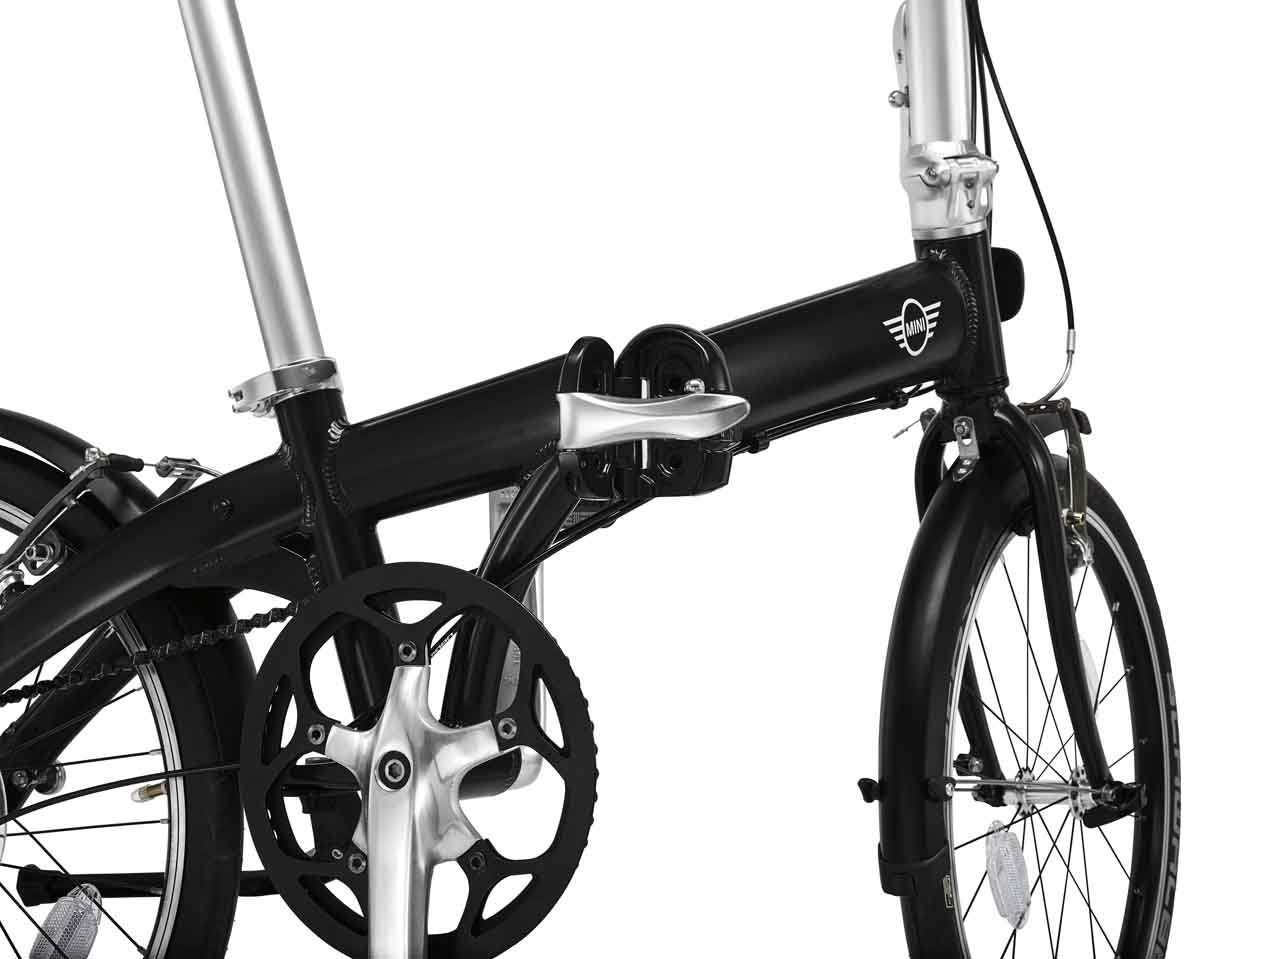 61eH15lmb0L - MINI Genuine 8 Speed 20 Inch Wheels Bicycle Cycle Folding Bike 80912413798